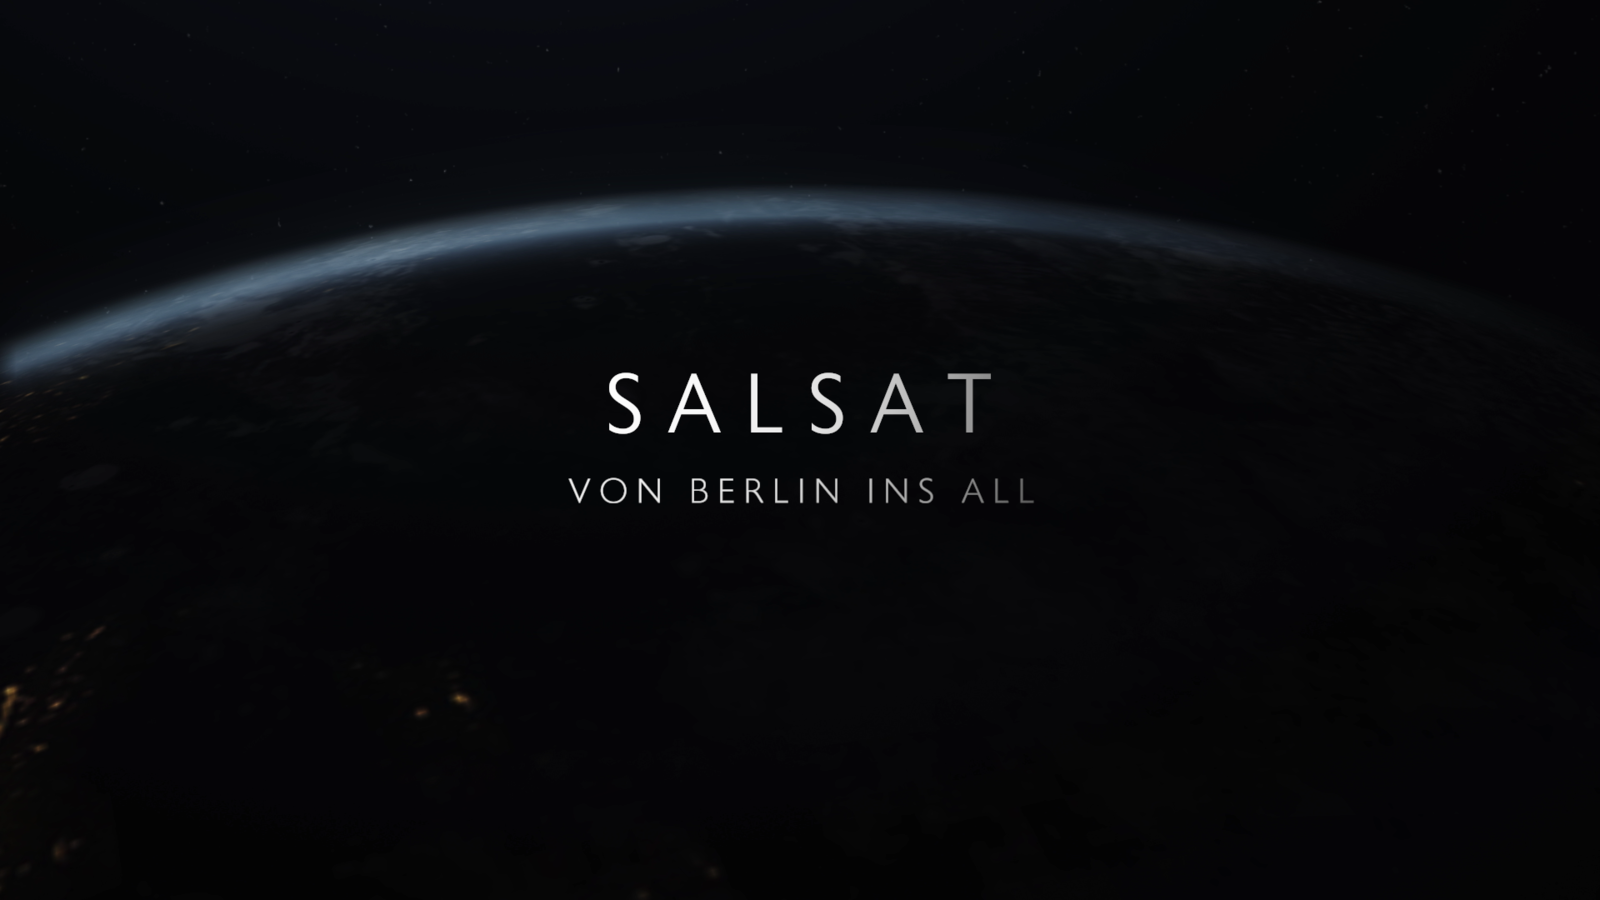 [Translate to English:] SALSAT Thumbnail